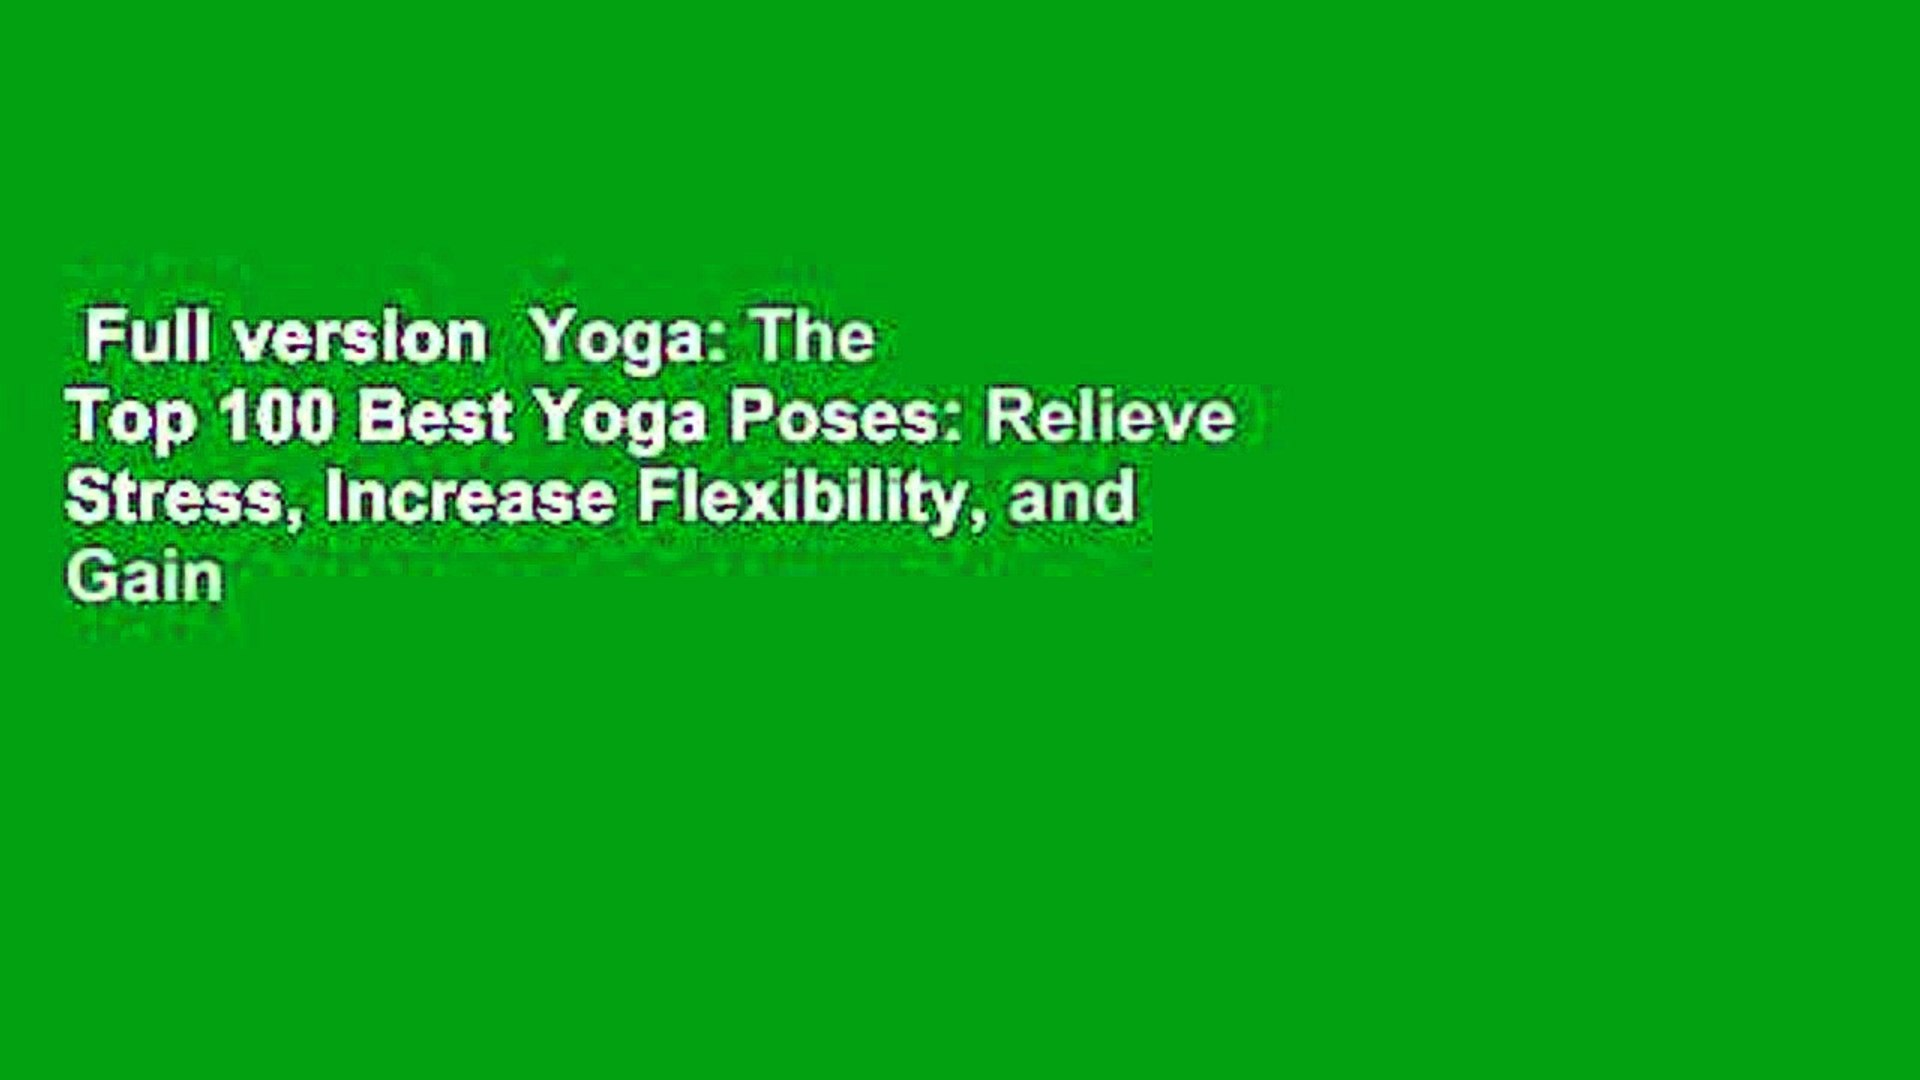 Full version  Yoga: The Top 100 Best Yoga Poses: Relieve Stress, Increase Flexibility, and Gain